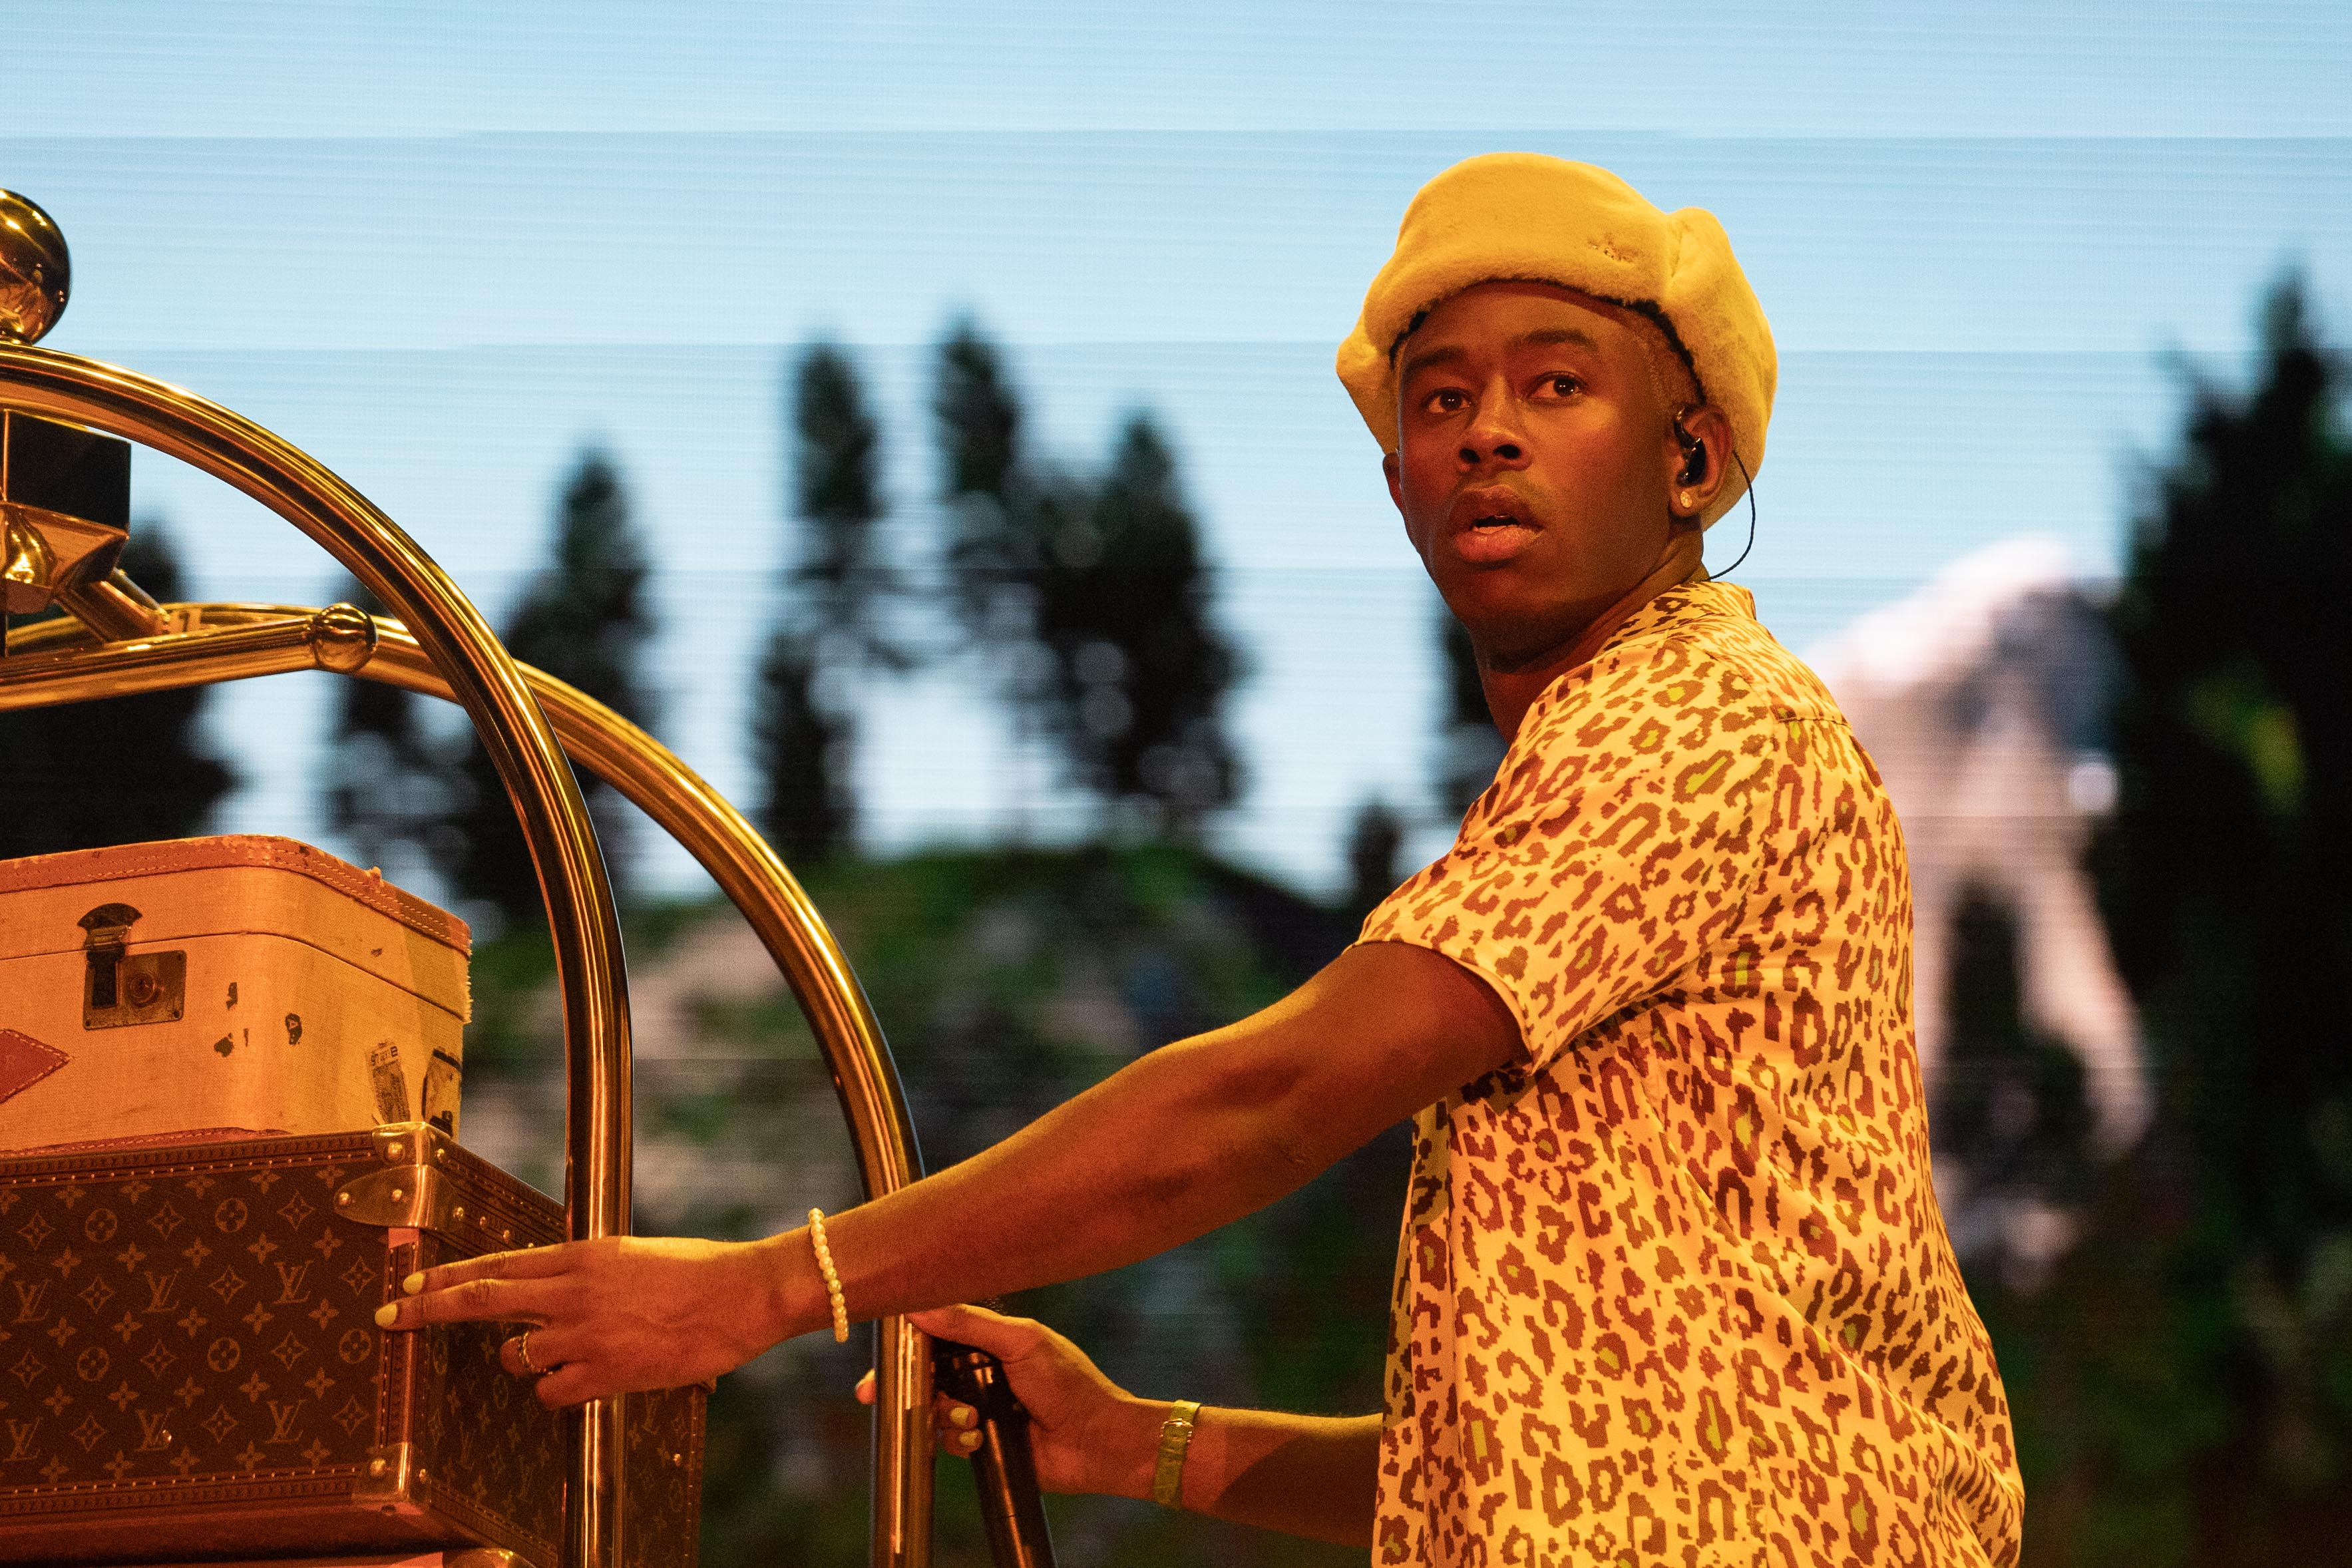 Tyler, The Creator closes out the show on the T-Mobile stage Friday night.